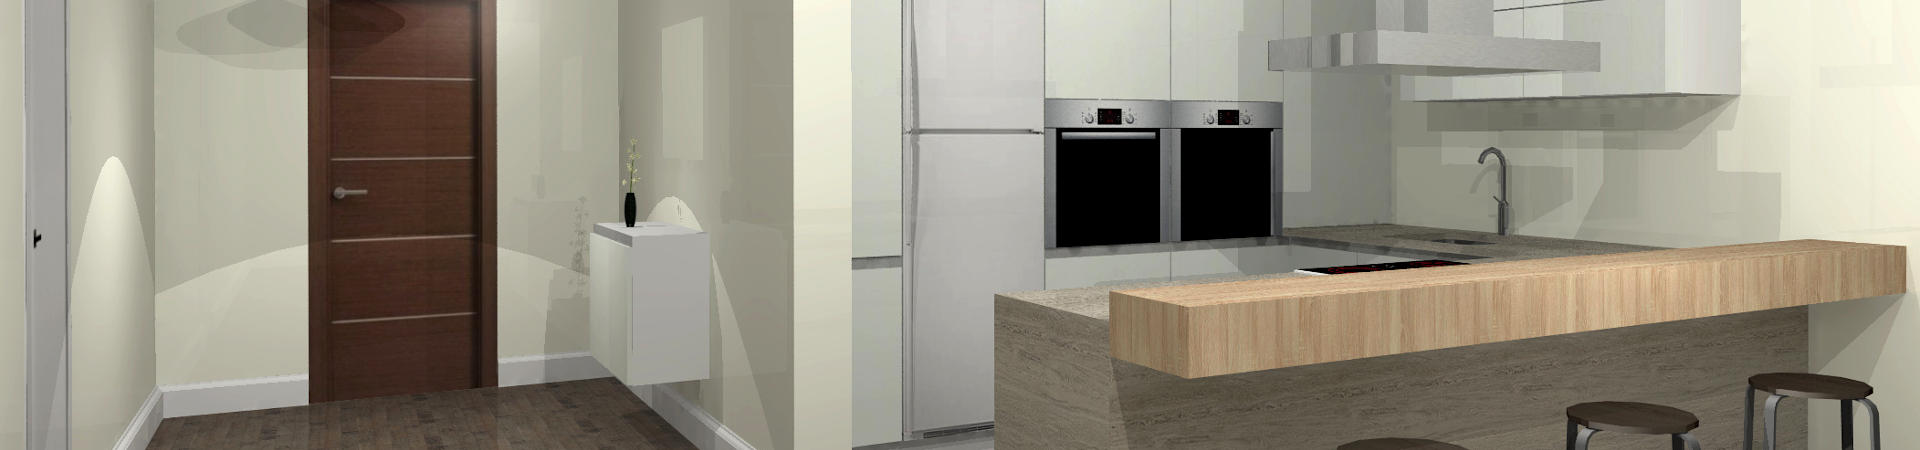 Diseos De Cocinas En 3d. Latest Diseo Banos Coslada Madrid With ...